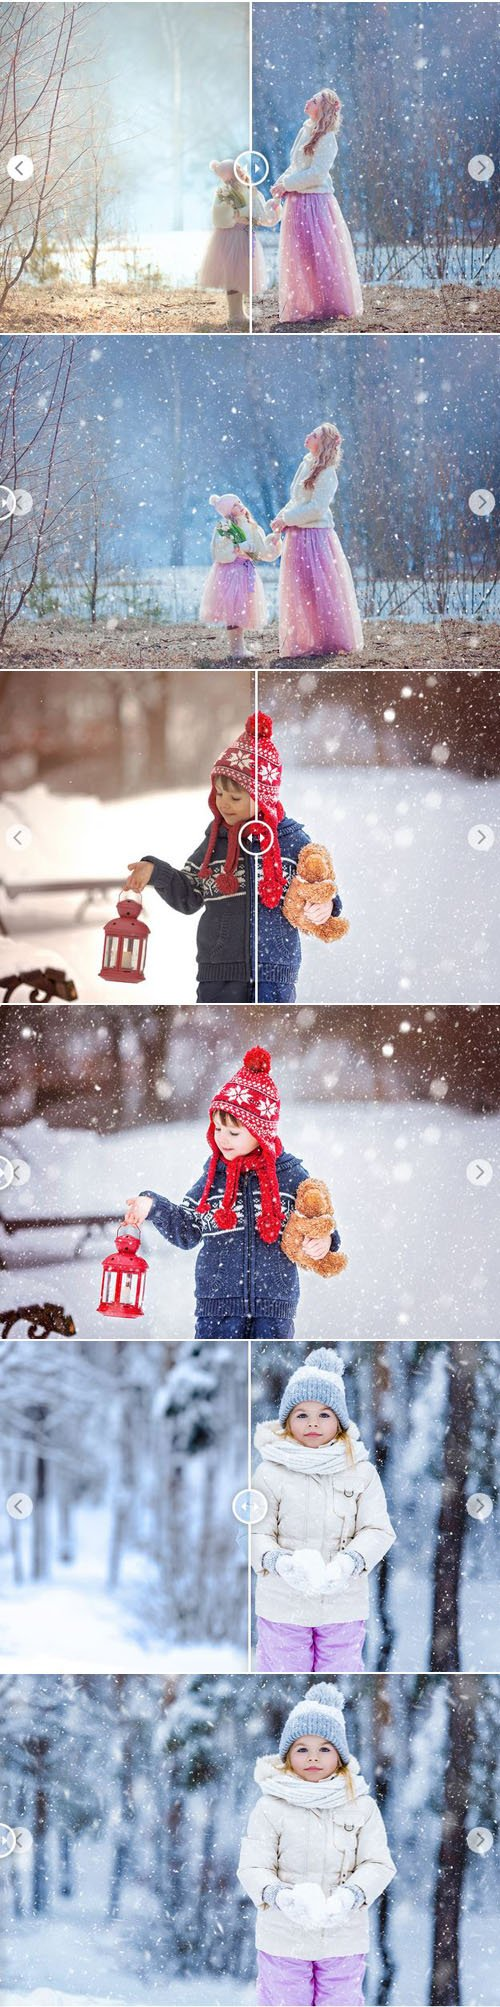 10 Snow Overlays Bundle for Photoshop